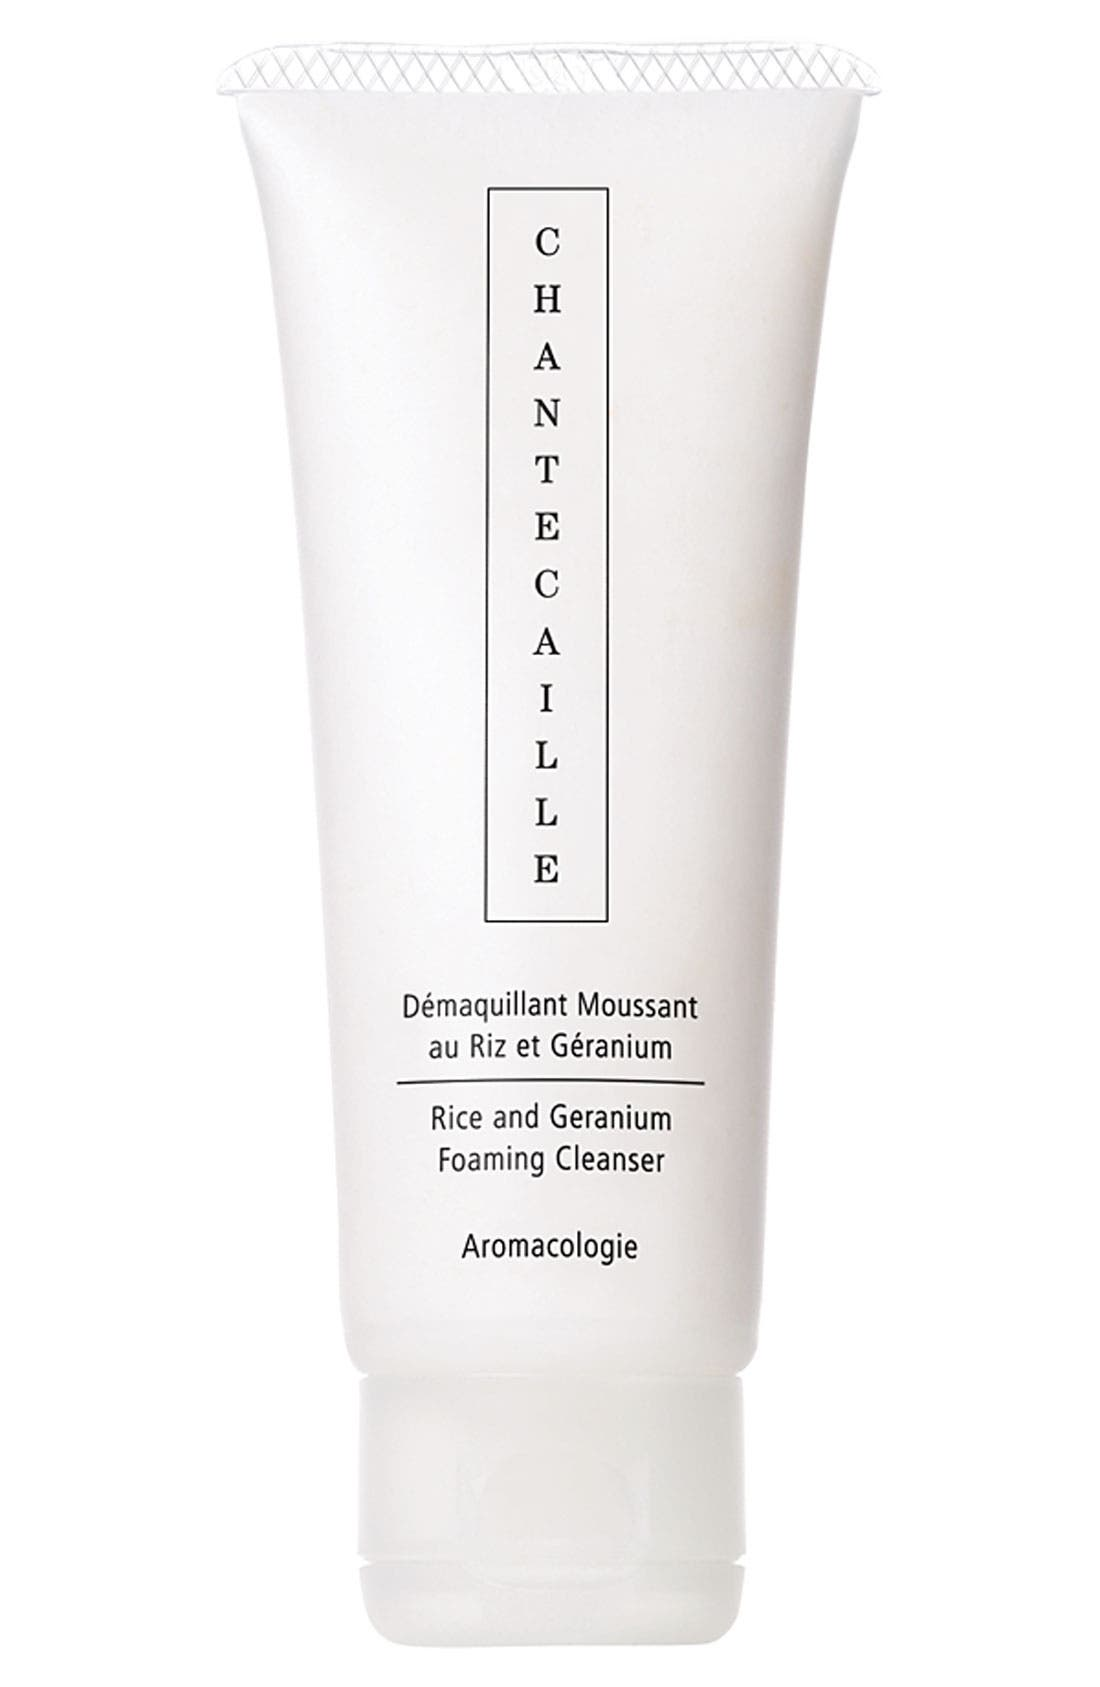 Rice and Geranium Foaming Cleanser,                         Main,                         color, 000